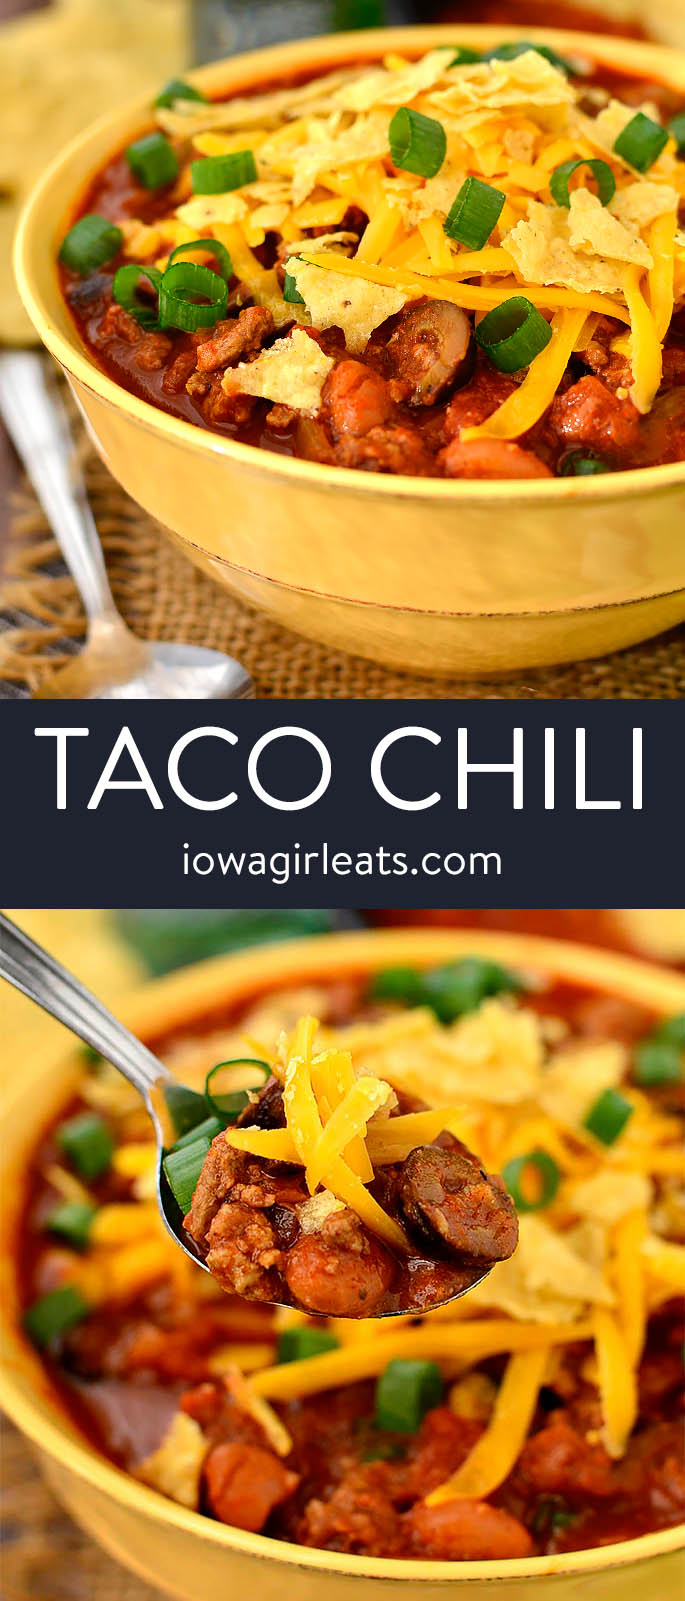 photo collage of taco chili in a bowl